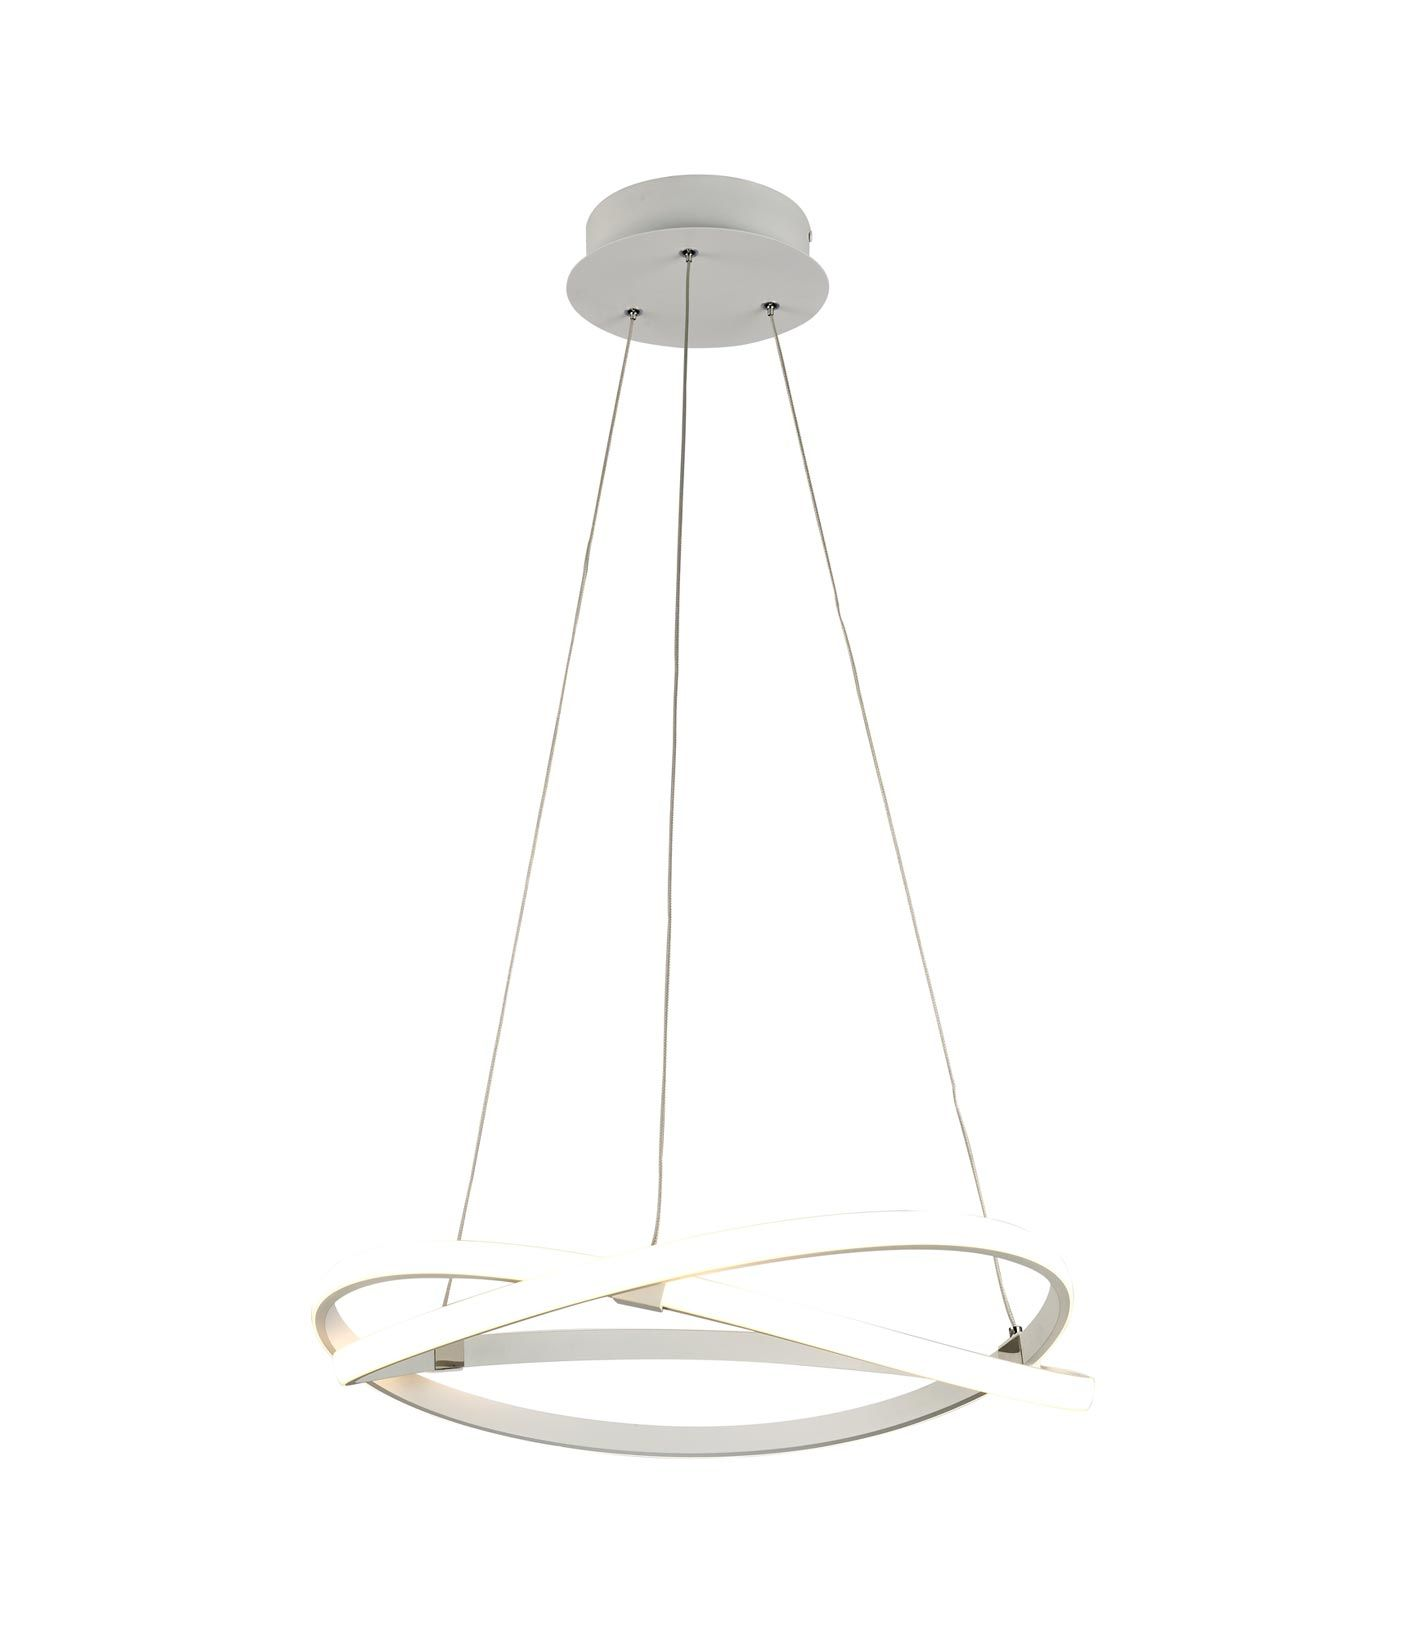 Lámparas colección INFINITY LED dimmable